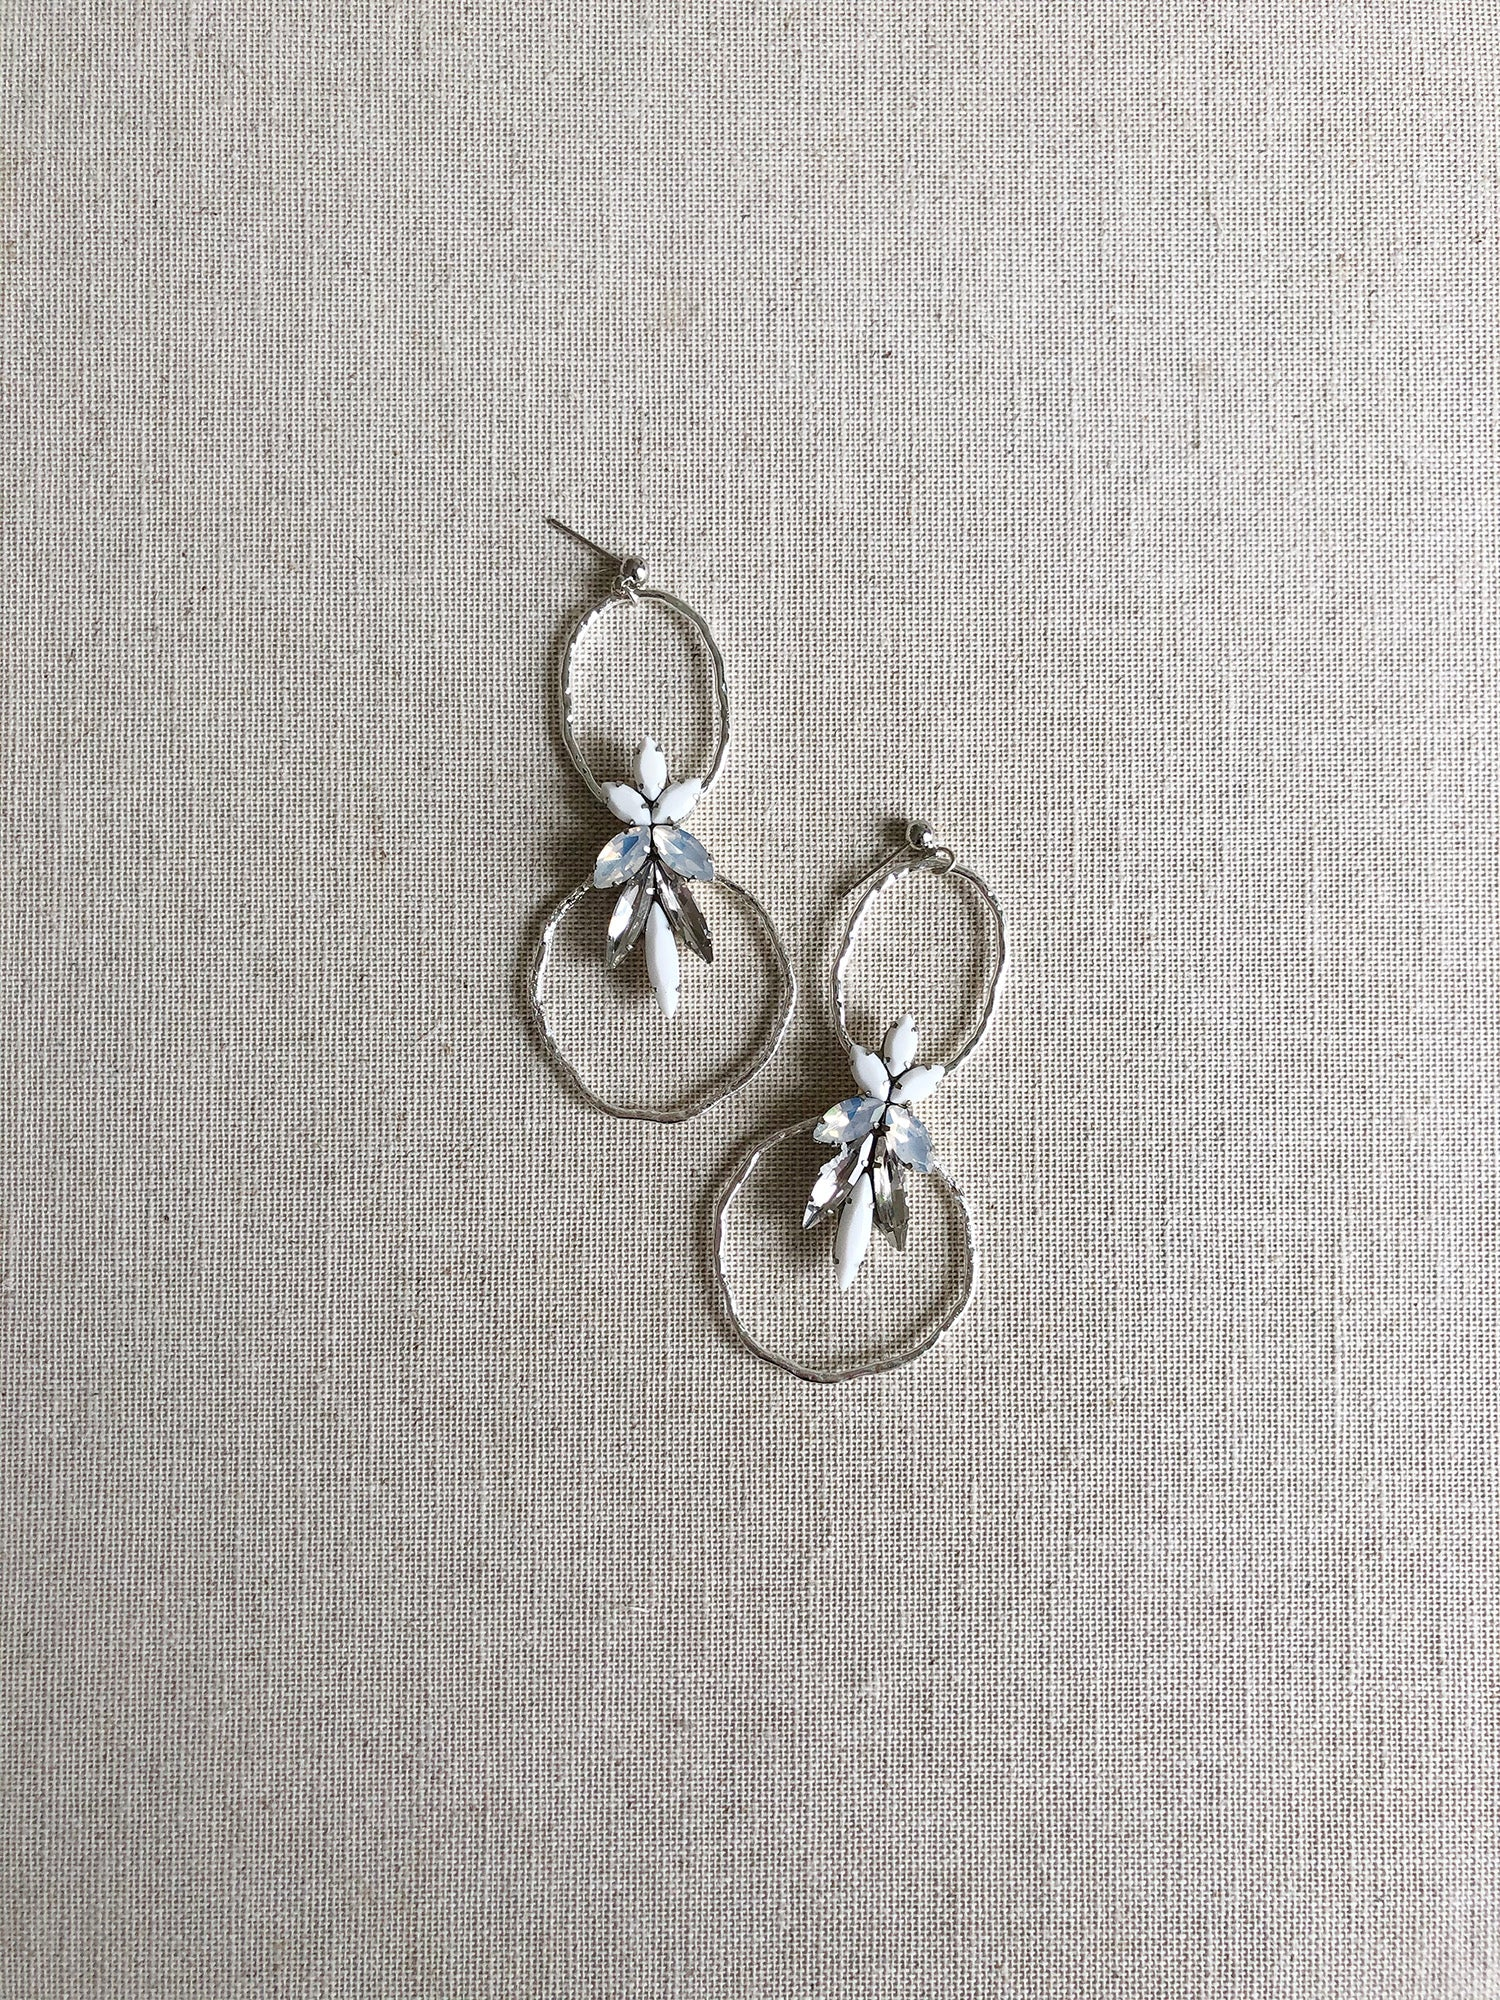 Magdalena Hoop Earrings in Silver PRE-ORDER